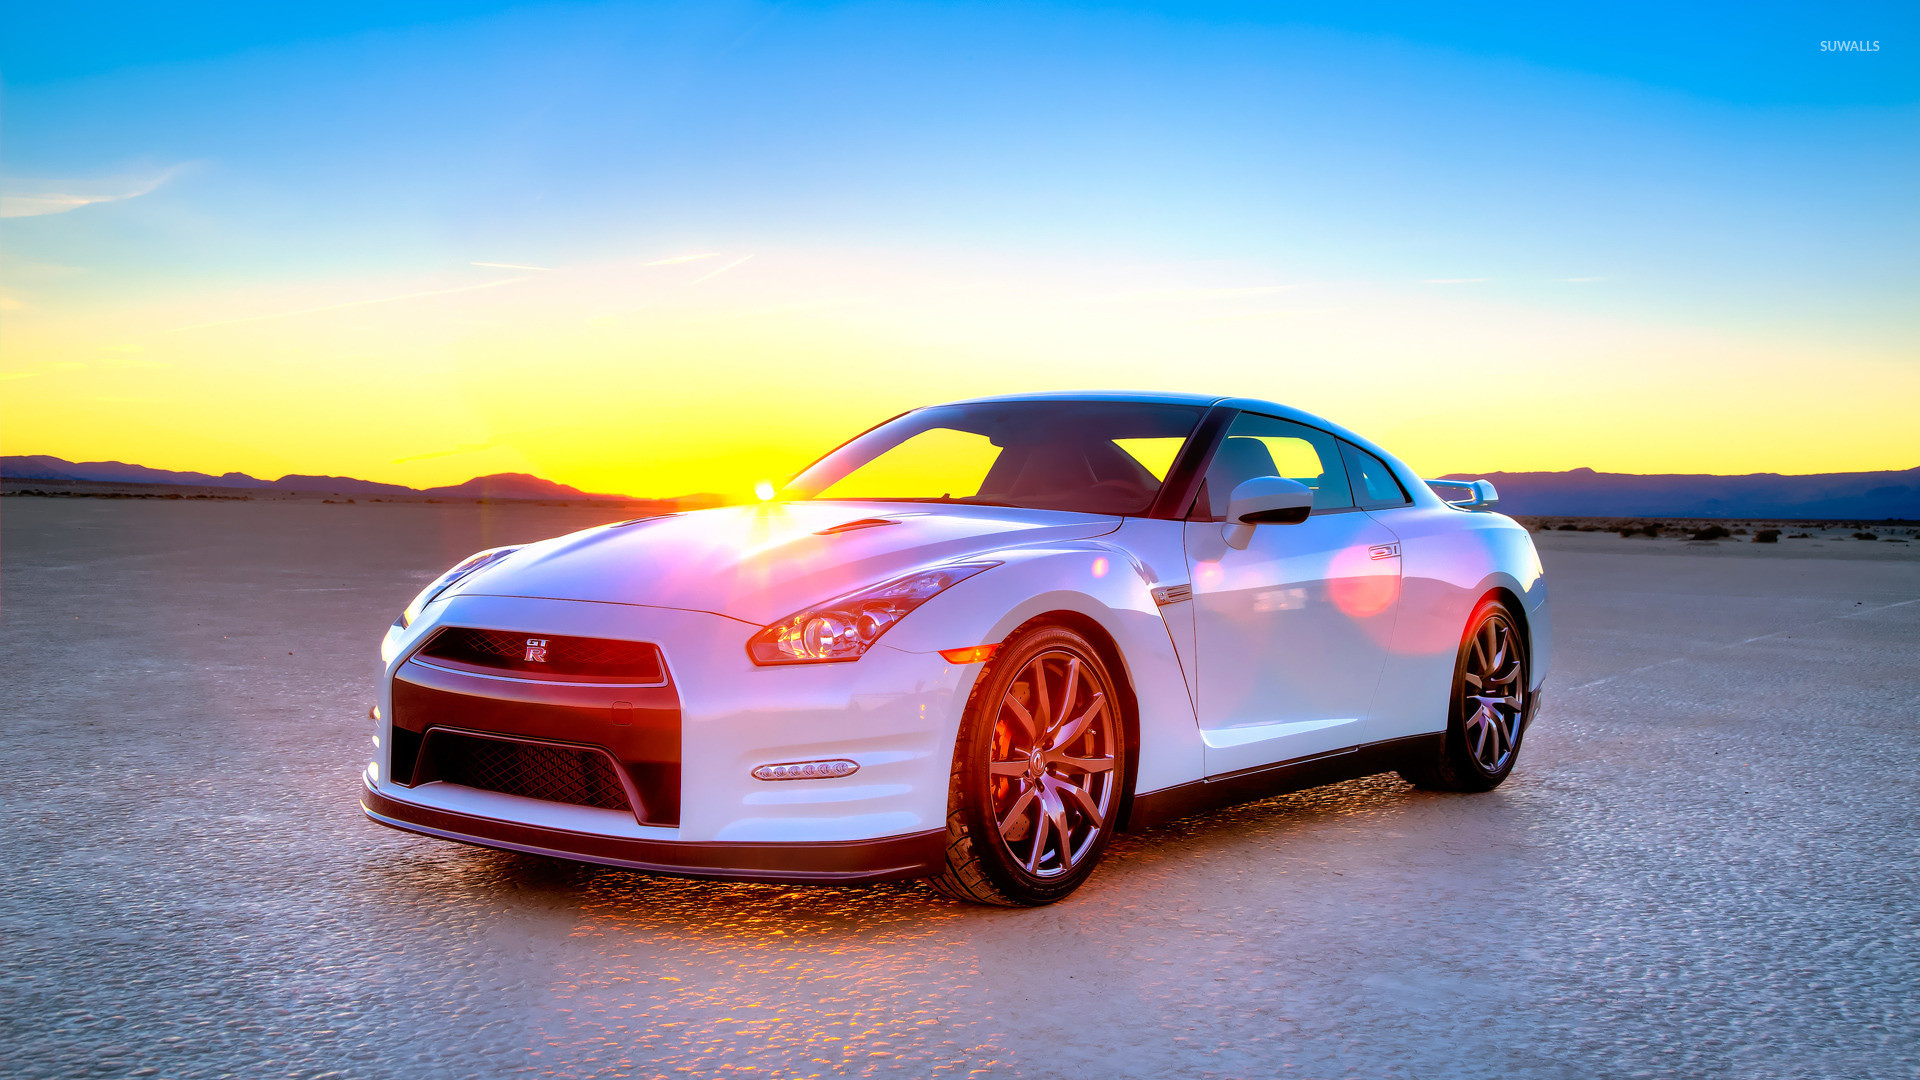 2014 Nissan GT-R wallpaper